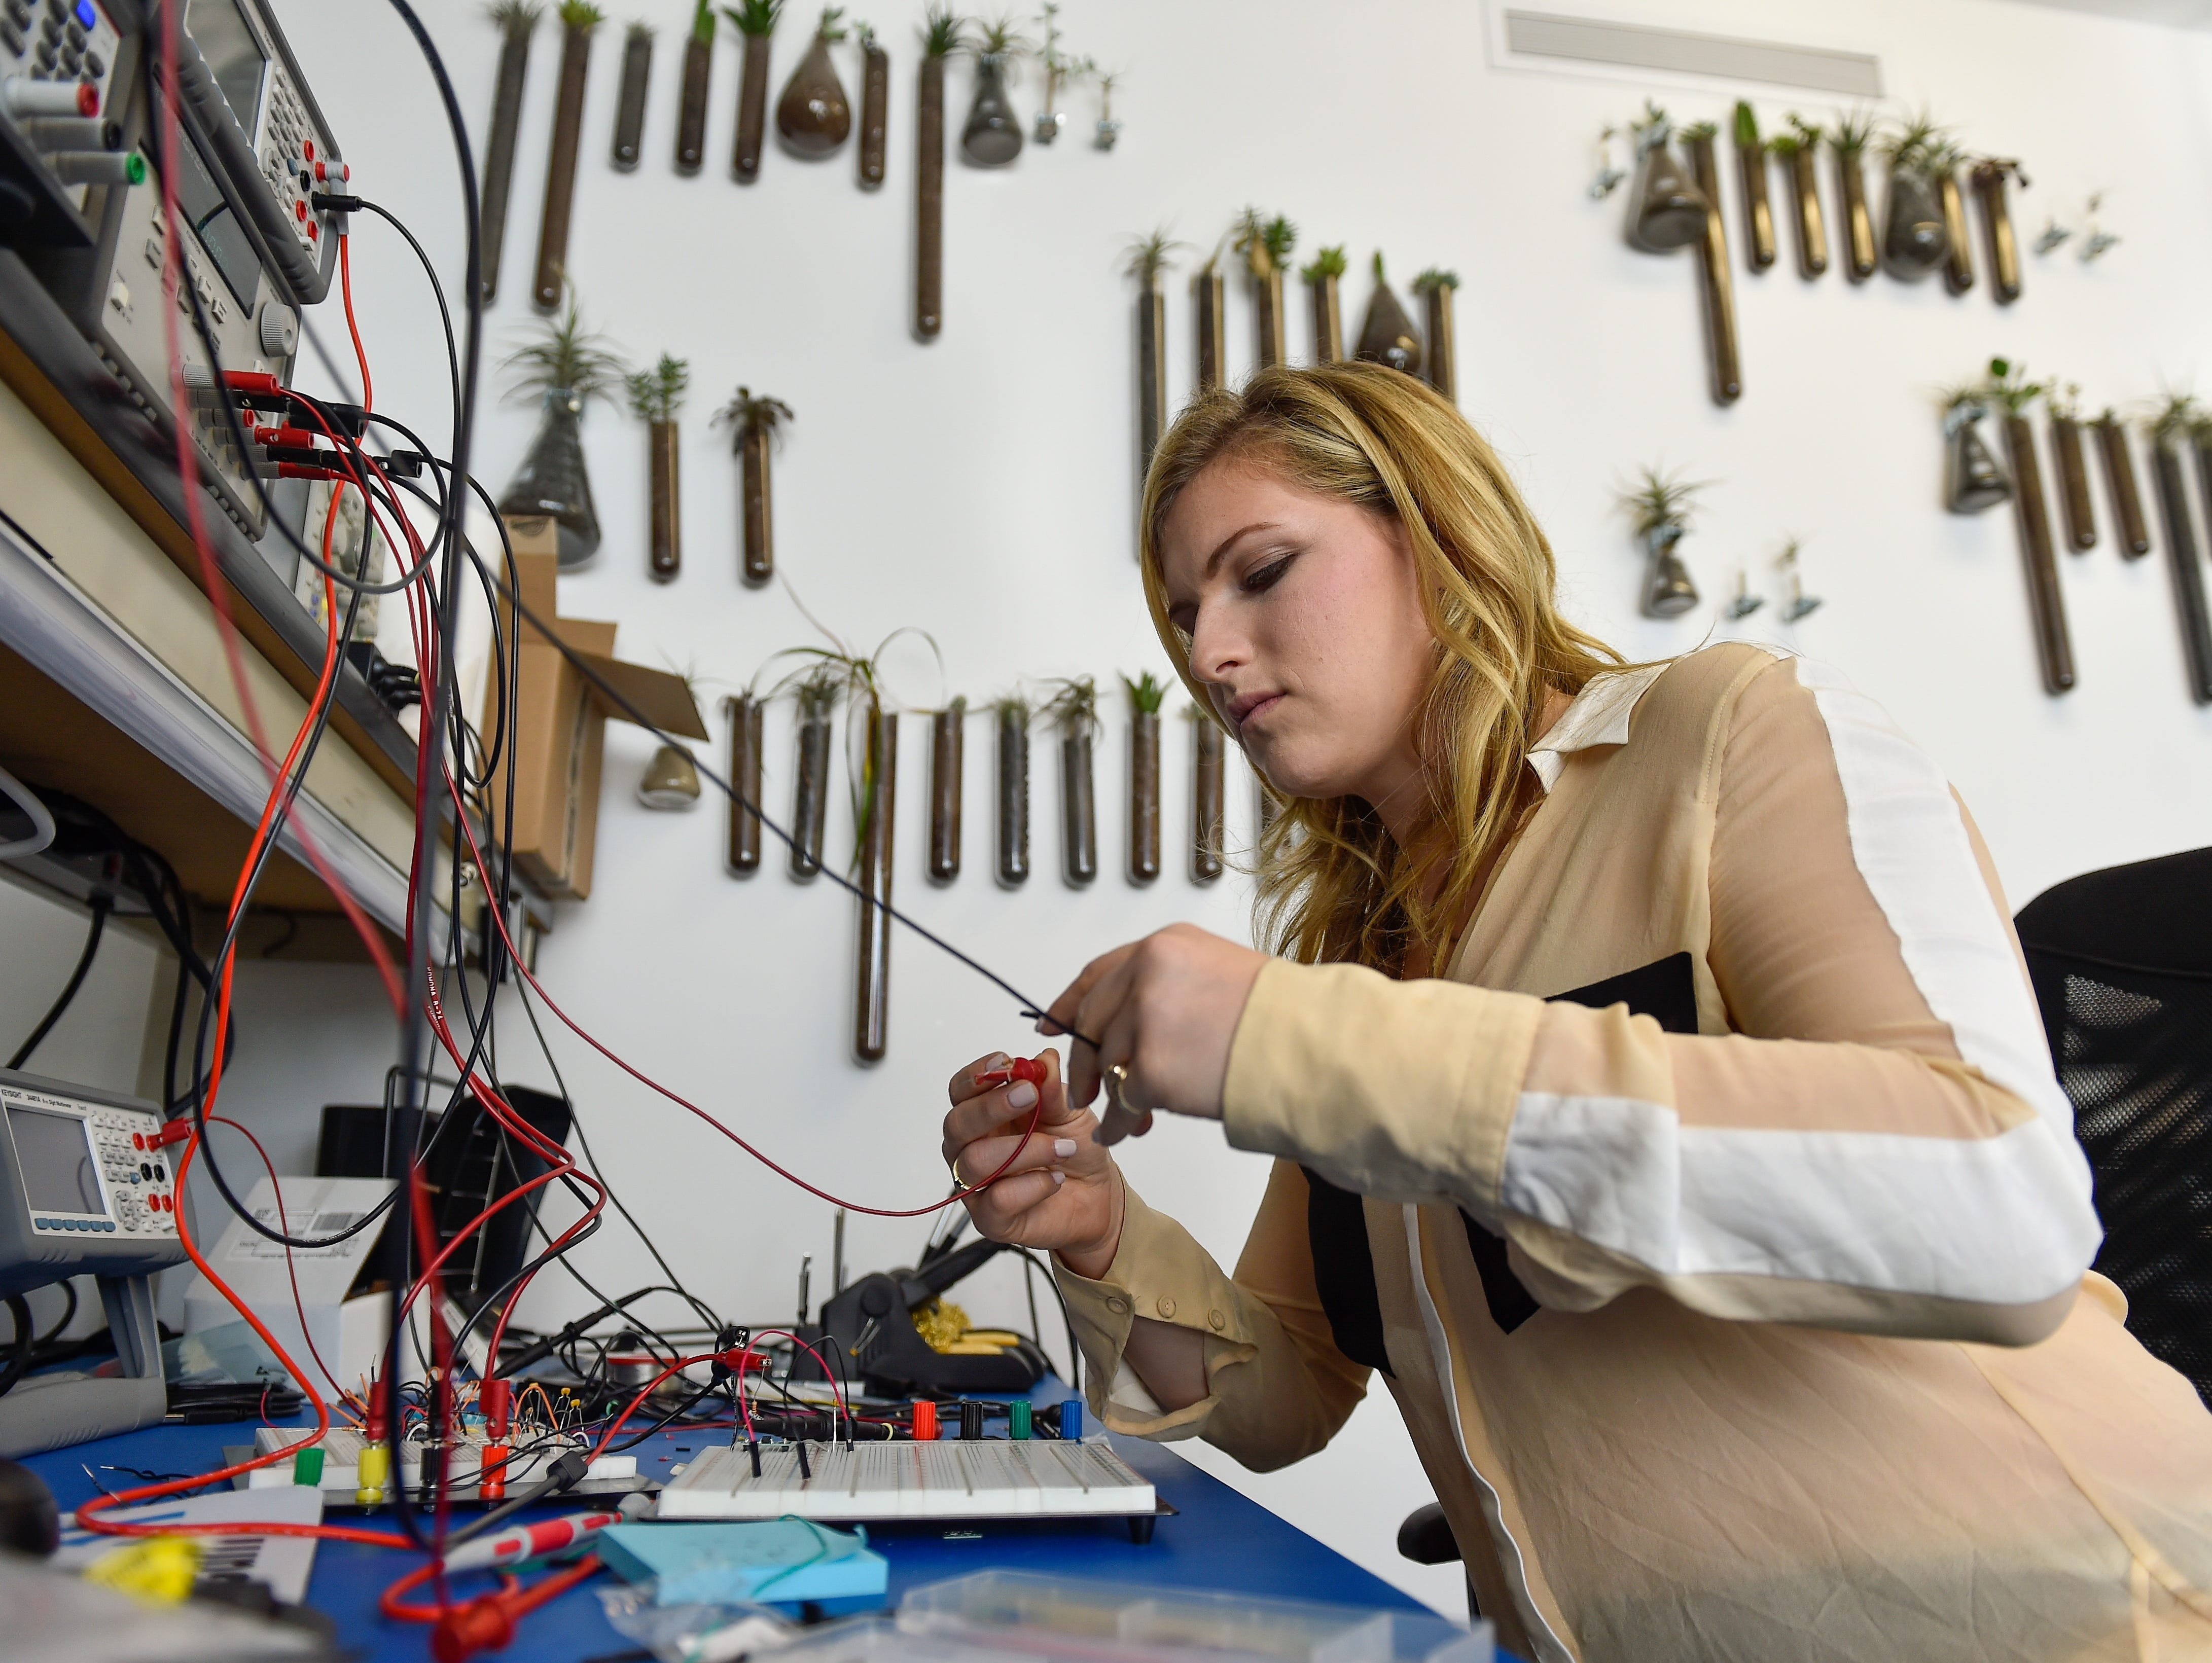 Meredith Perry, 25, is the founder of uBeam, a venture-backed startup, that aims to make something rather fantastical a reality: charging your phone and other electronic devices over thin air.